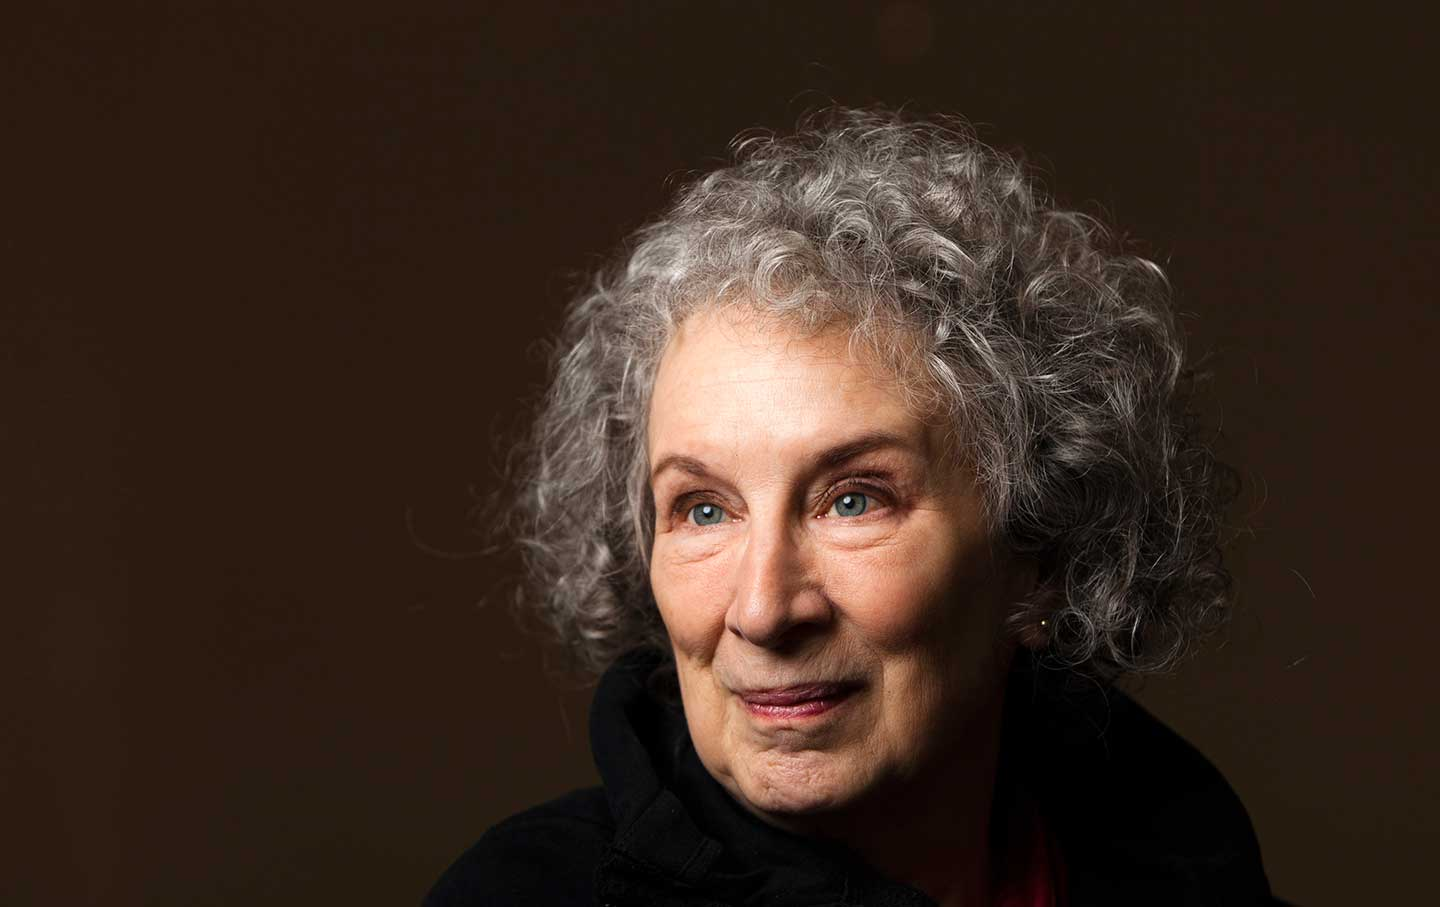 essays on margaret atwood In an essay for the new york times, author margaret atwood addresses the inescapable political overtones and lasting legacy of the handmaid's tale.